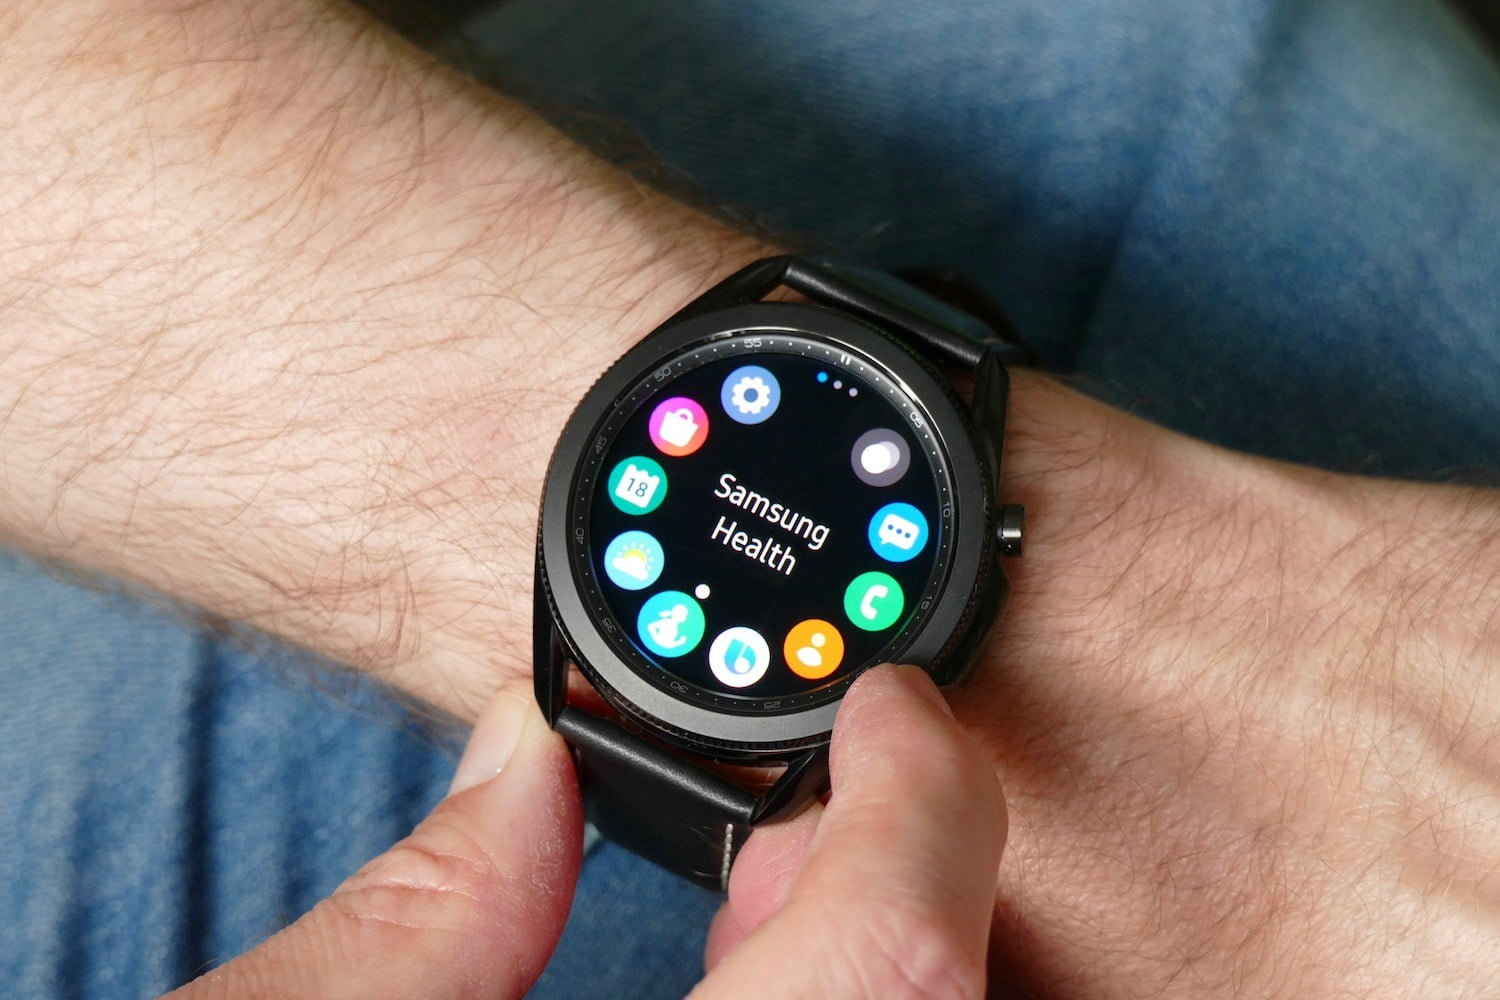 Custom UIs could make or break Google and Samsung's Wear smartwatch software